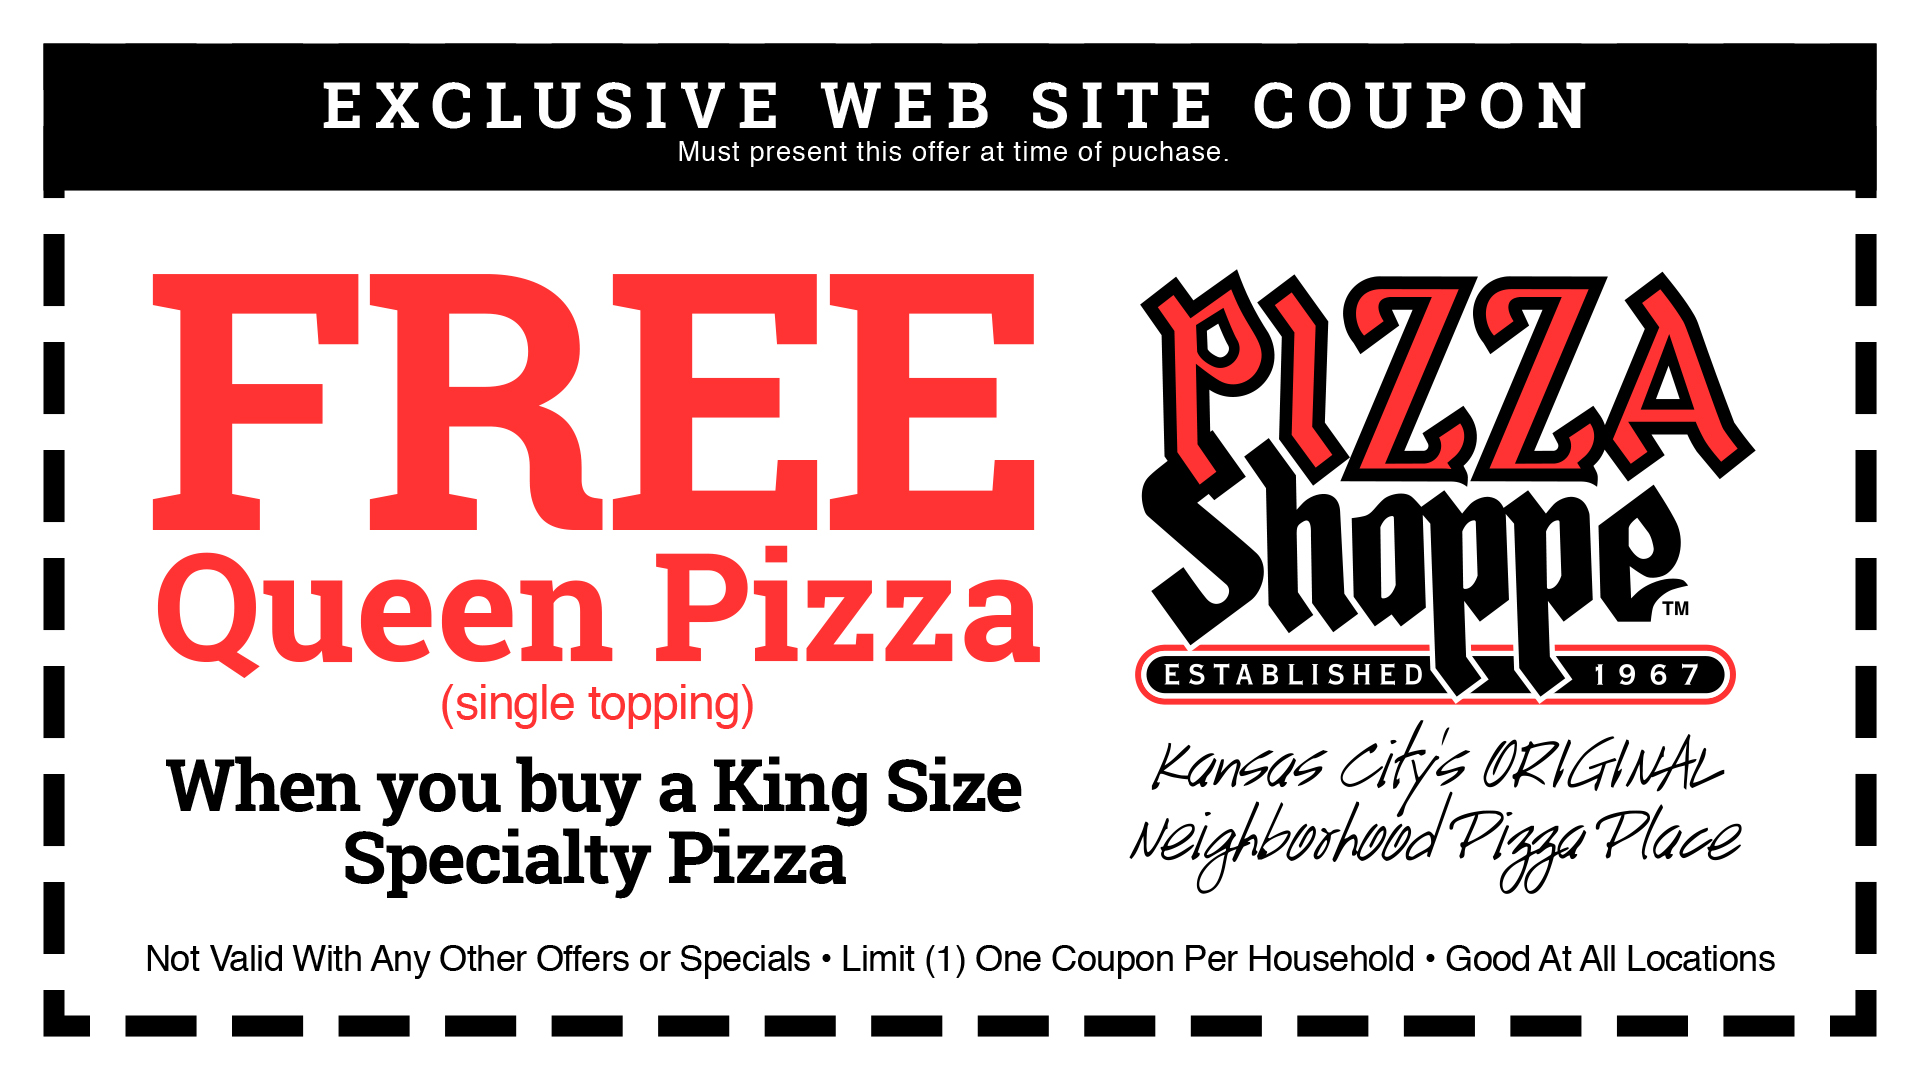 Offers Pizza Shoppe